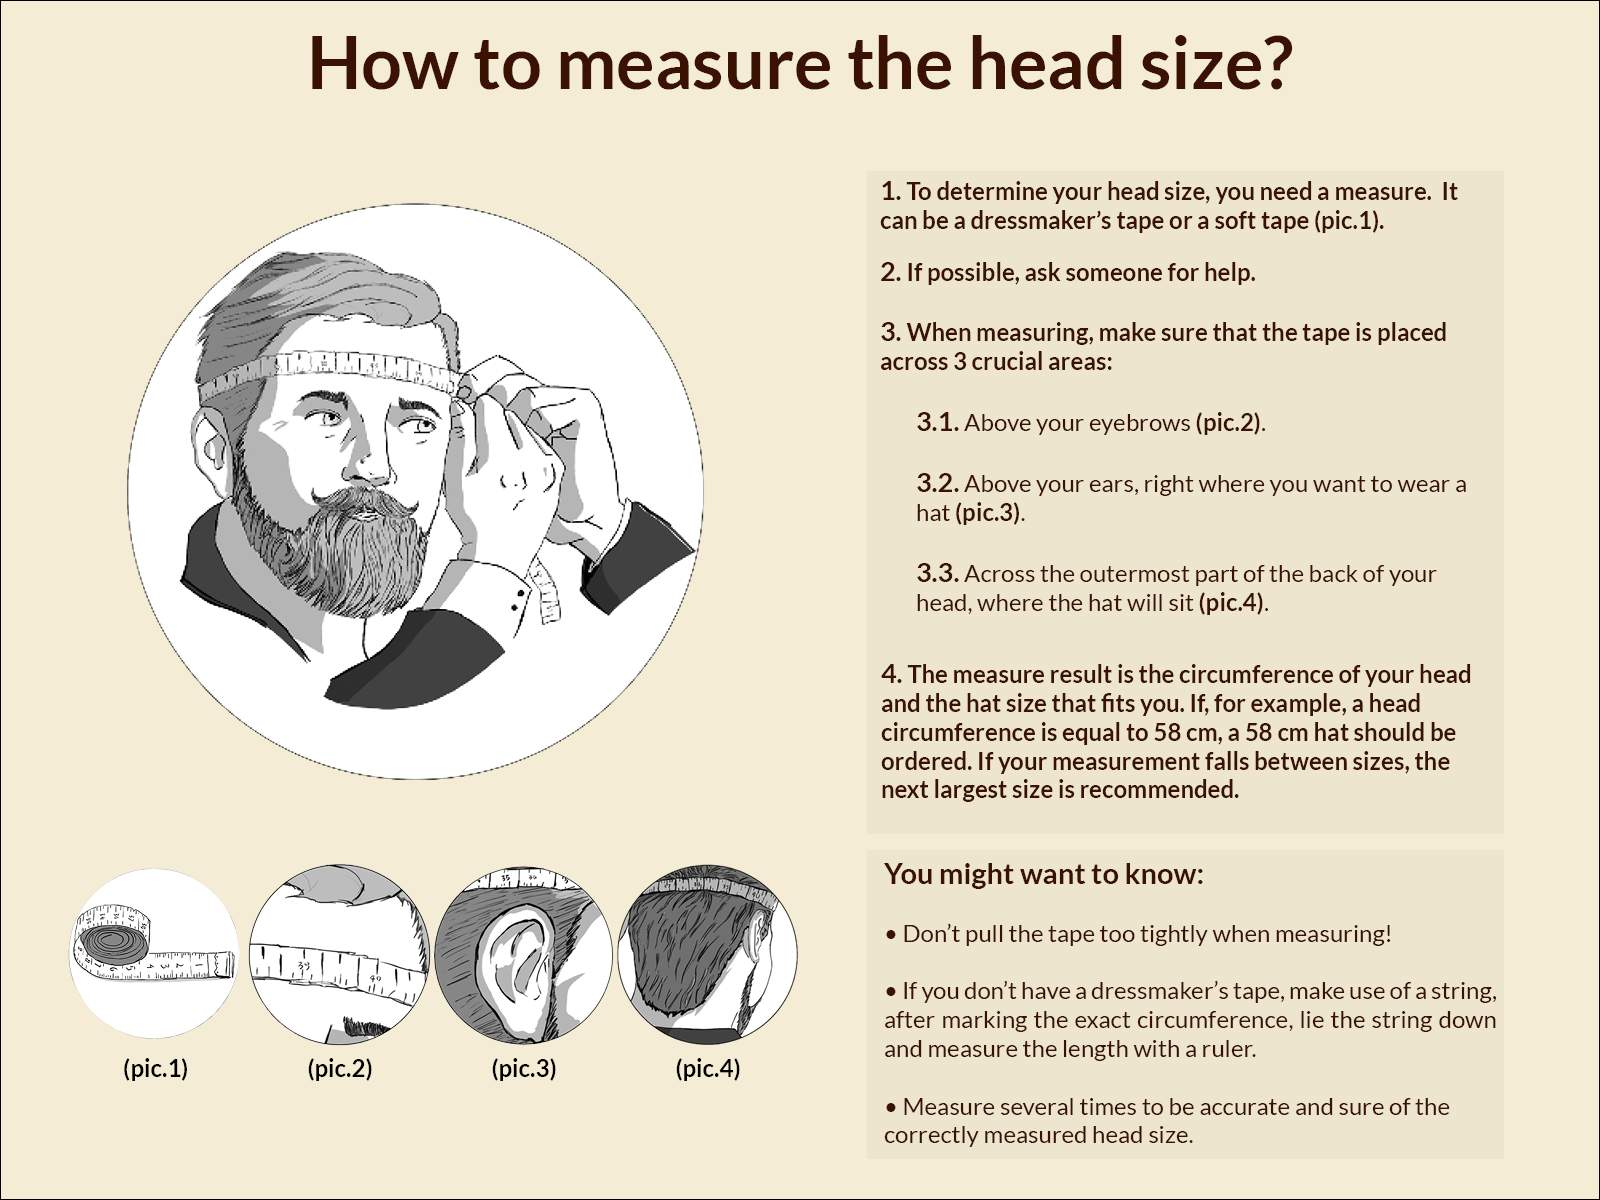 Tips for measuring a head